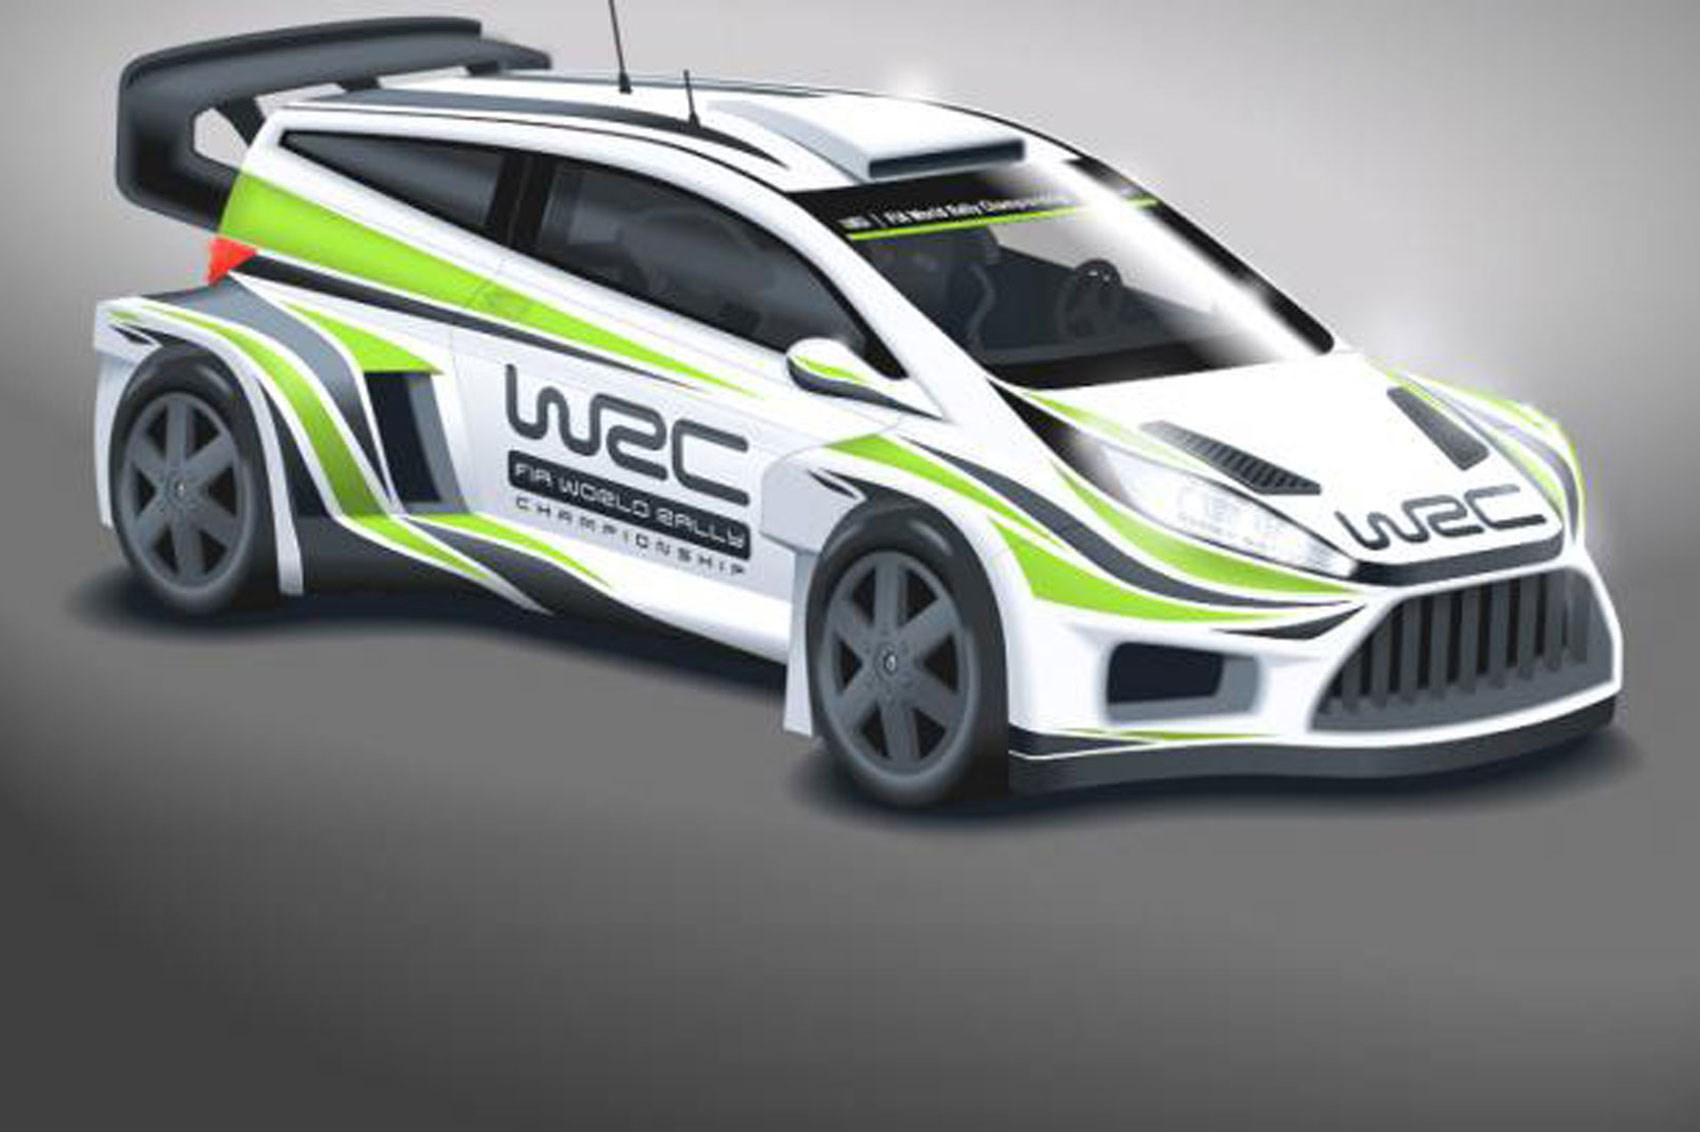 Ultrablogus  Ravishing Wild New Look For Wrc Cars In  By Car Magazine With Magnificent Wrc Cars Will Get Wider Bodies Bigger Wings And More Power For  With Beauteous  Vw Jetta Interior Parts Also Acura Tl Interior Parts In Addition Forte Interiors And Chevy K Blazer Interior As Well As Interior Photos Additionally Interior Car Roof Repair From Carmagazinecouk With Ultrablogus  Magnificent Wild New Look For Wrc Cars In  By Car Magazine With Beauteous Wrc Cars Will Get Wider Bodies Bigger Wings And More Power For  And Ravishing  Vw Jetta Interior Parts Also Acura Tl Interior Parts In Addition Forte Interiors From Carmagazinecouk